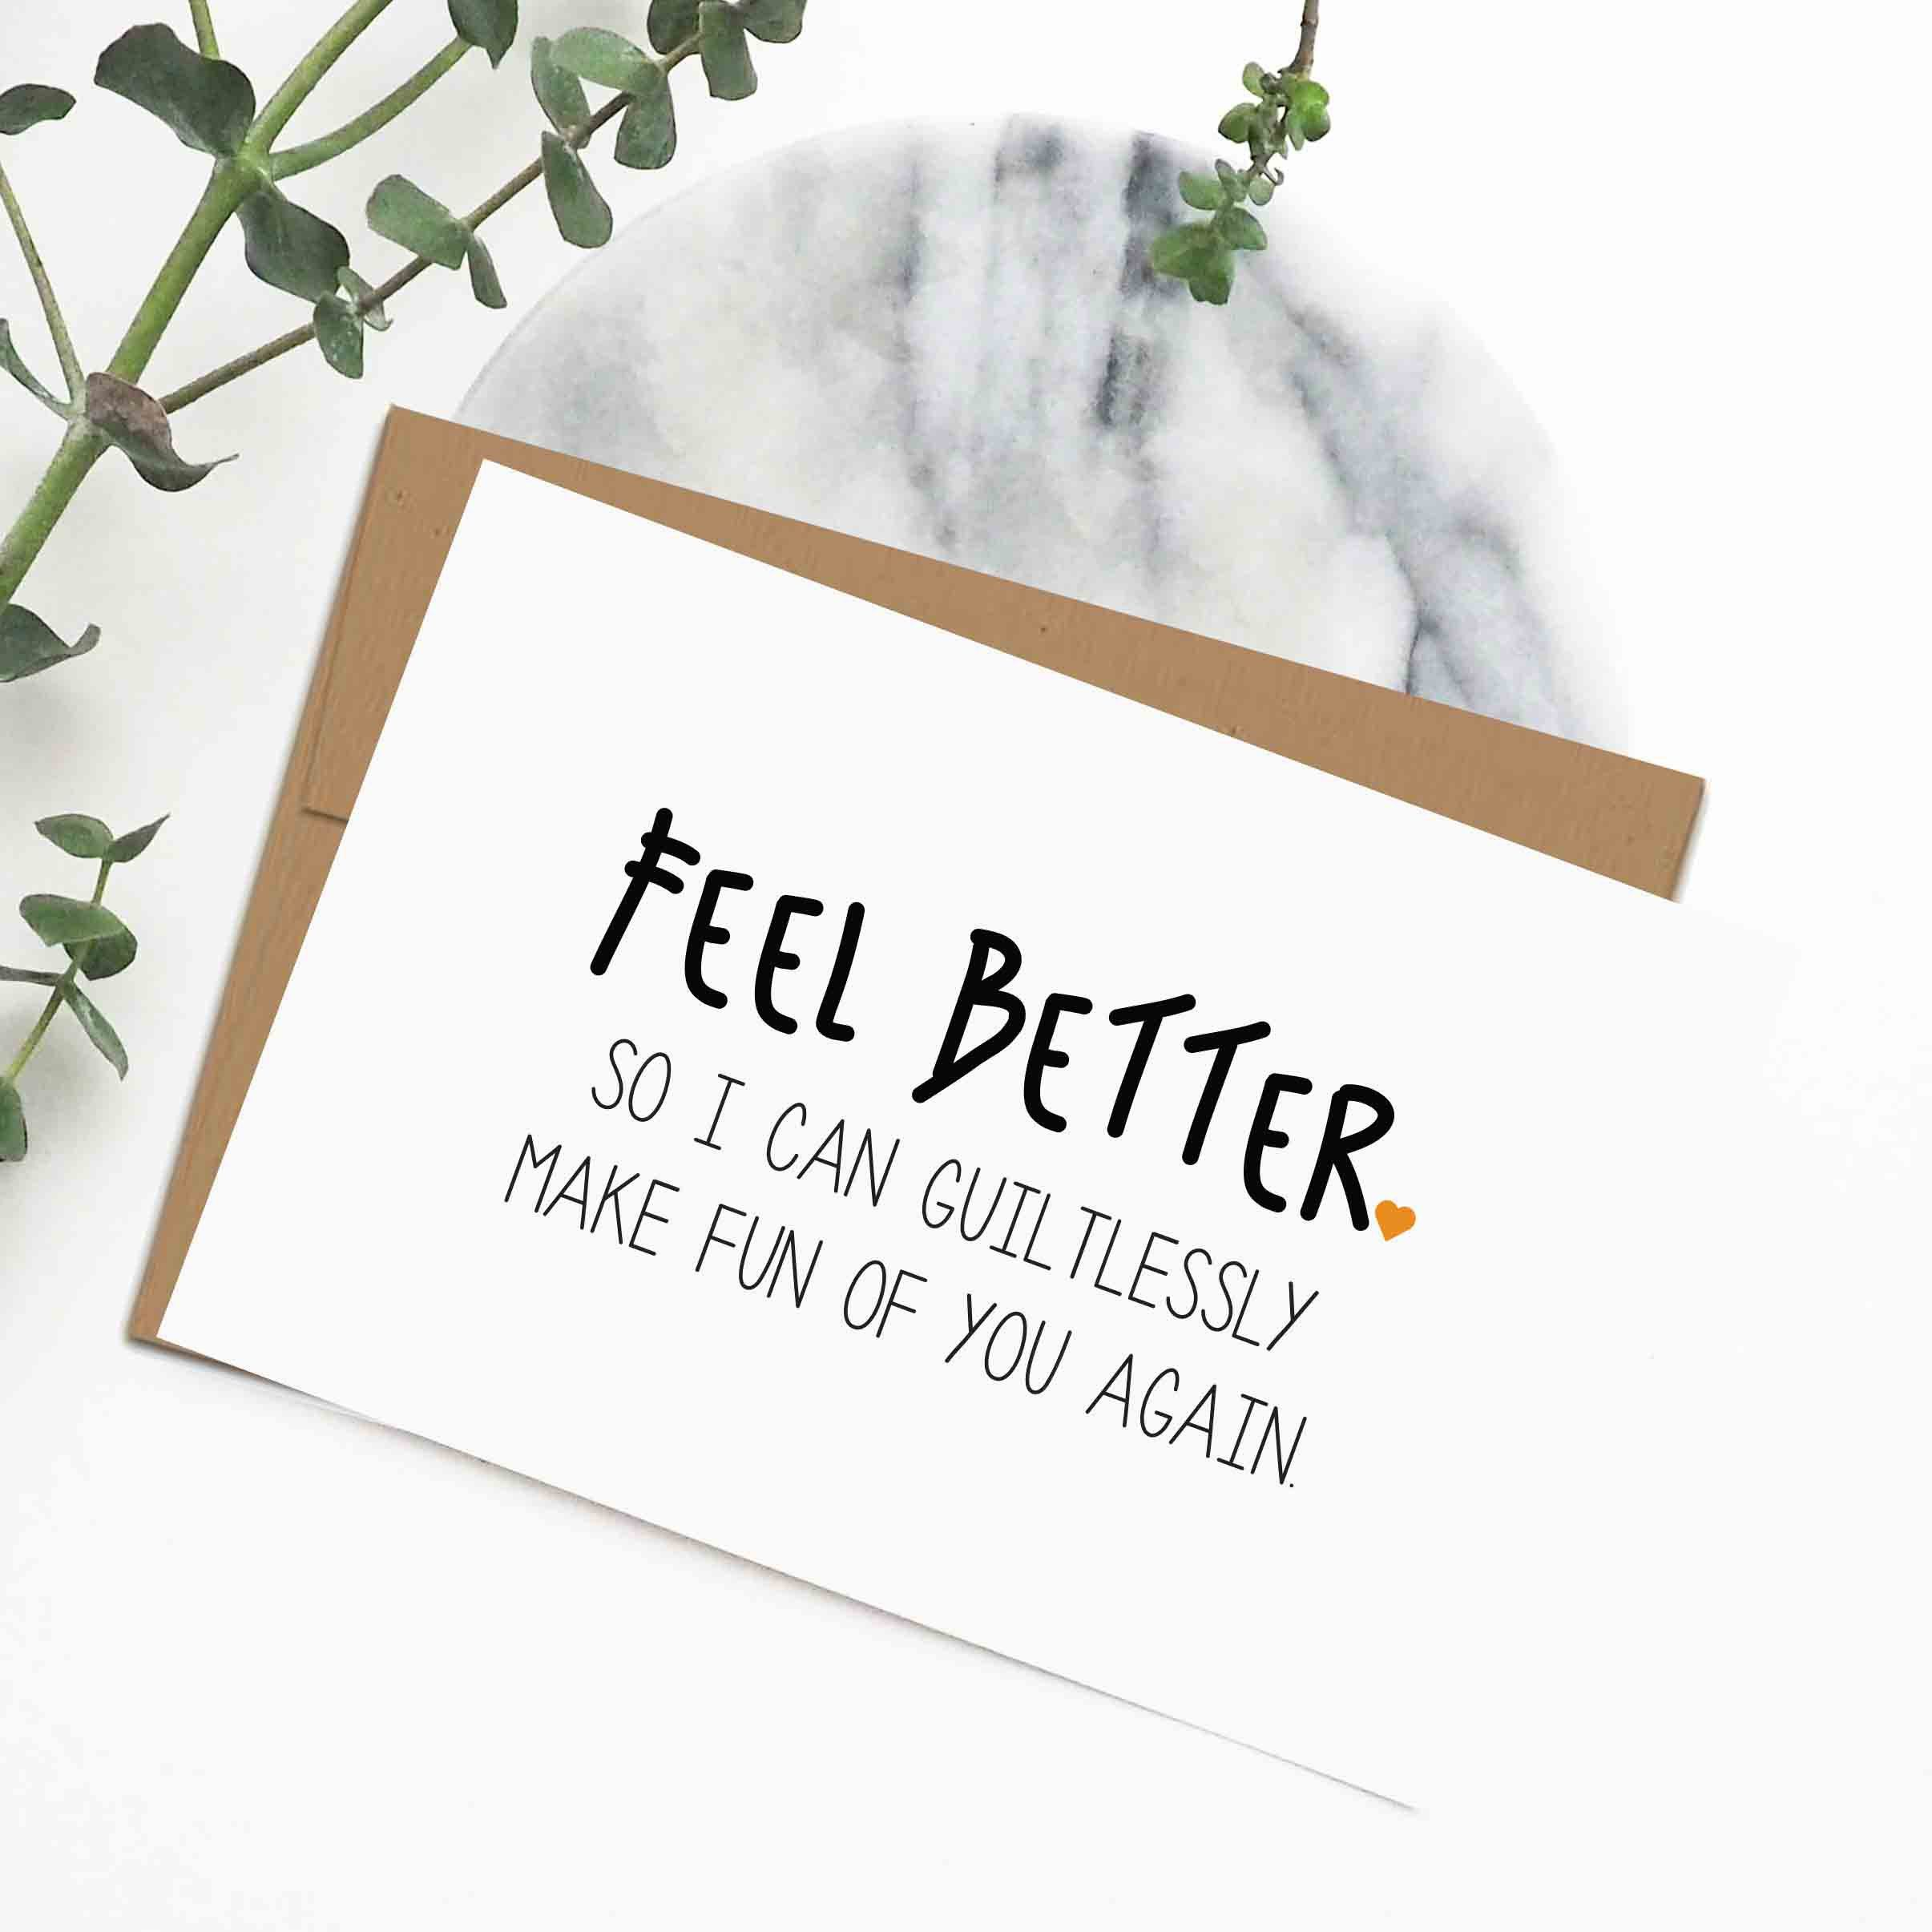 Funny Get Well Soon Cards Feel Better Cards Illness Sympathy Card Funny Handmade Get Well Soon Cards Funny Get Well Cards Funny Love Cards Feel Better Cards